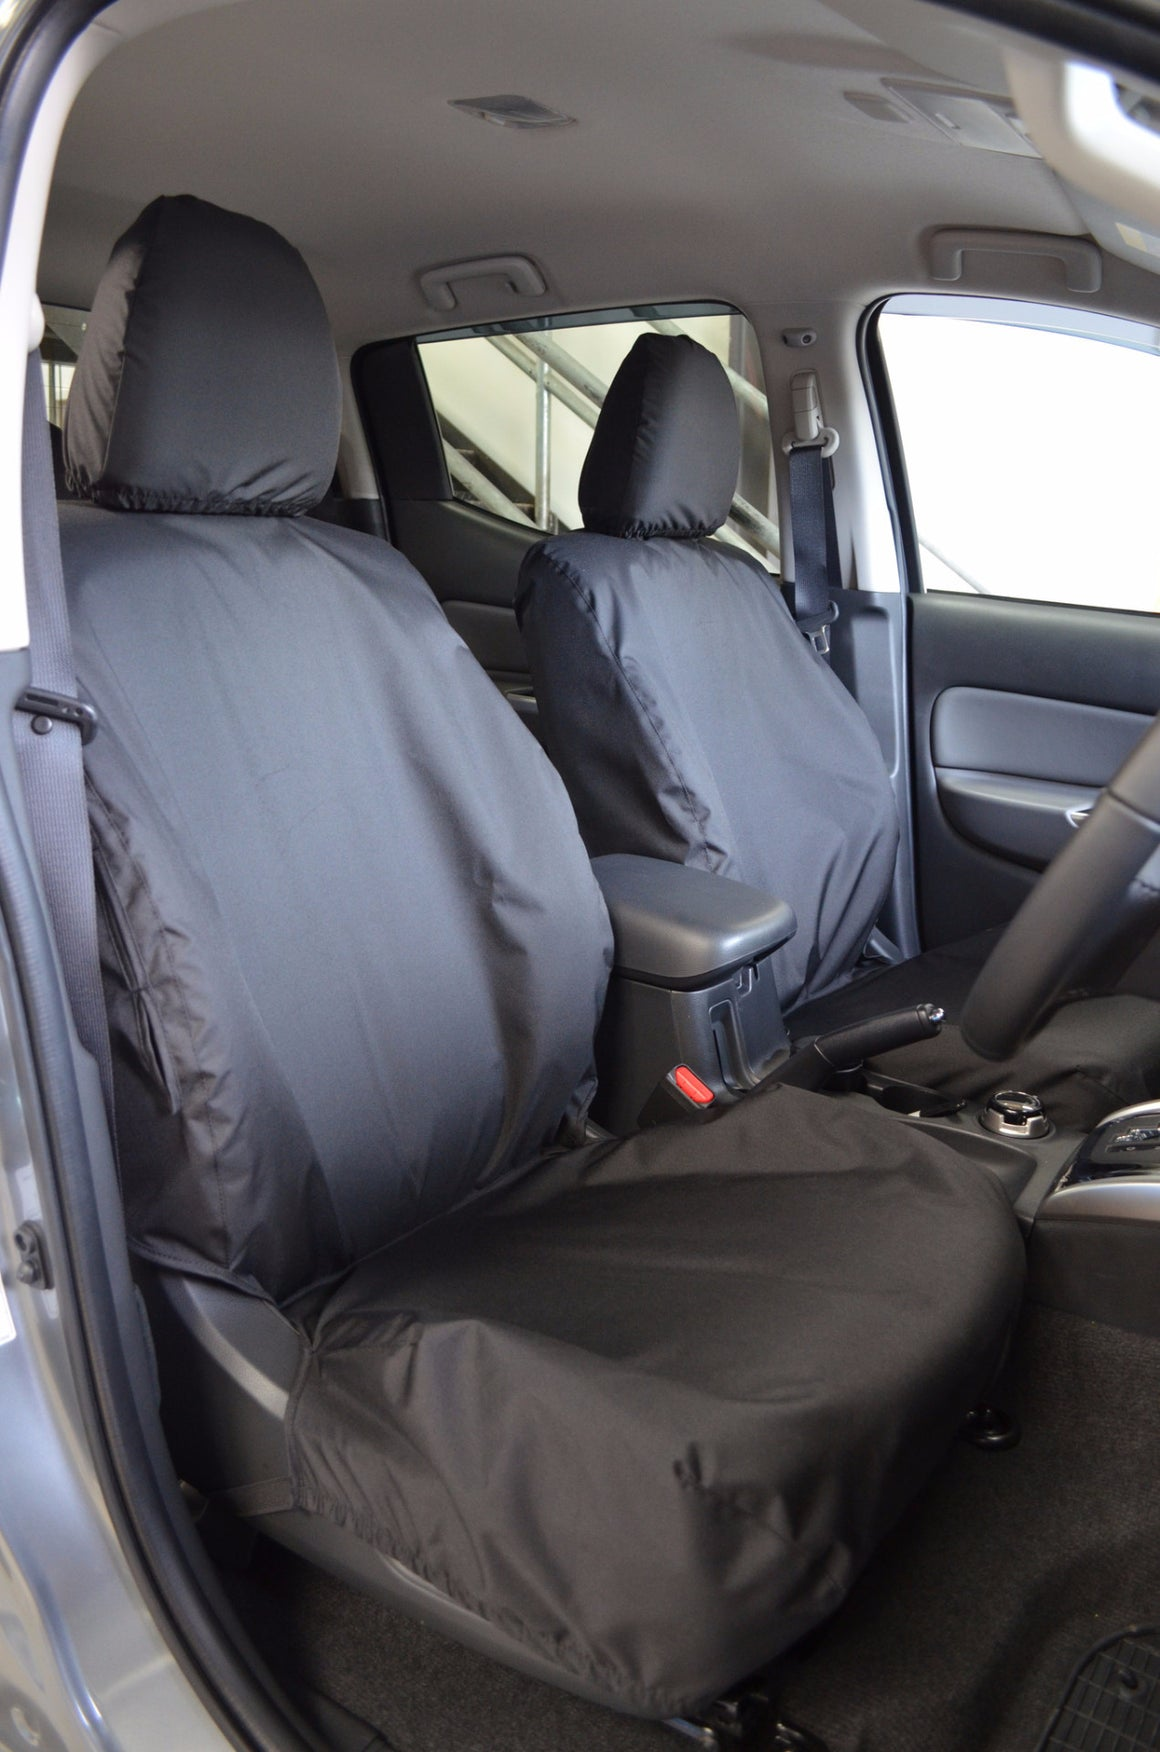 Mitsubishi L200 Mk 7 Double Cab (2015 Onwards) Tailored Seat Covers Rear Seats / Grey Turtle Covers Ltd